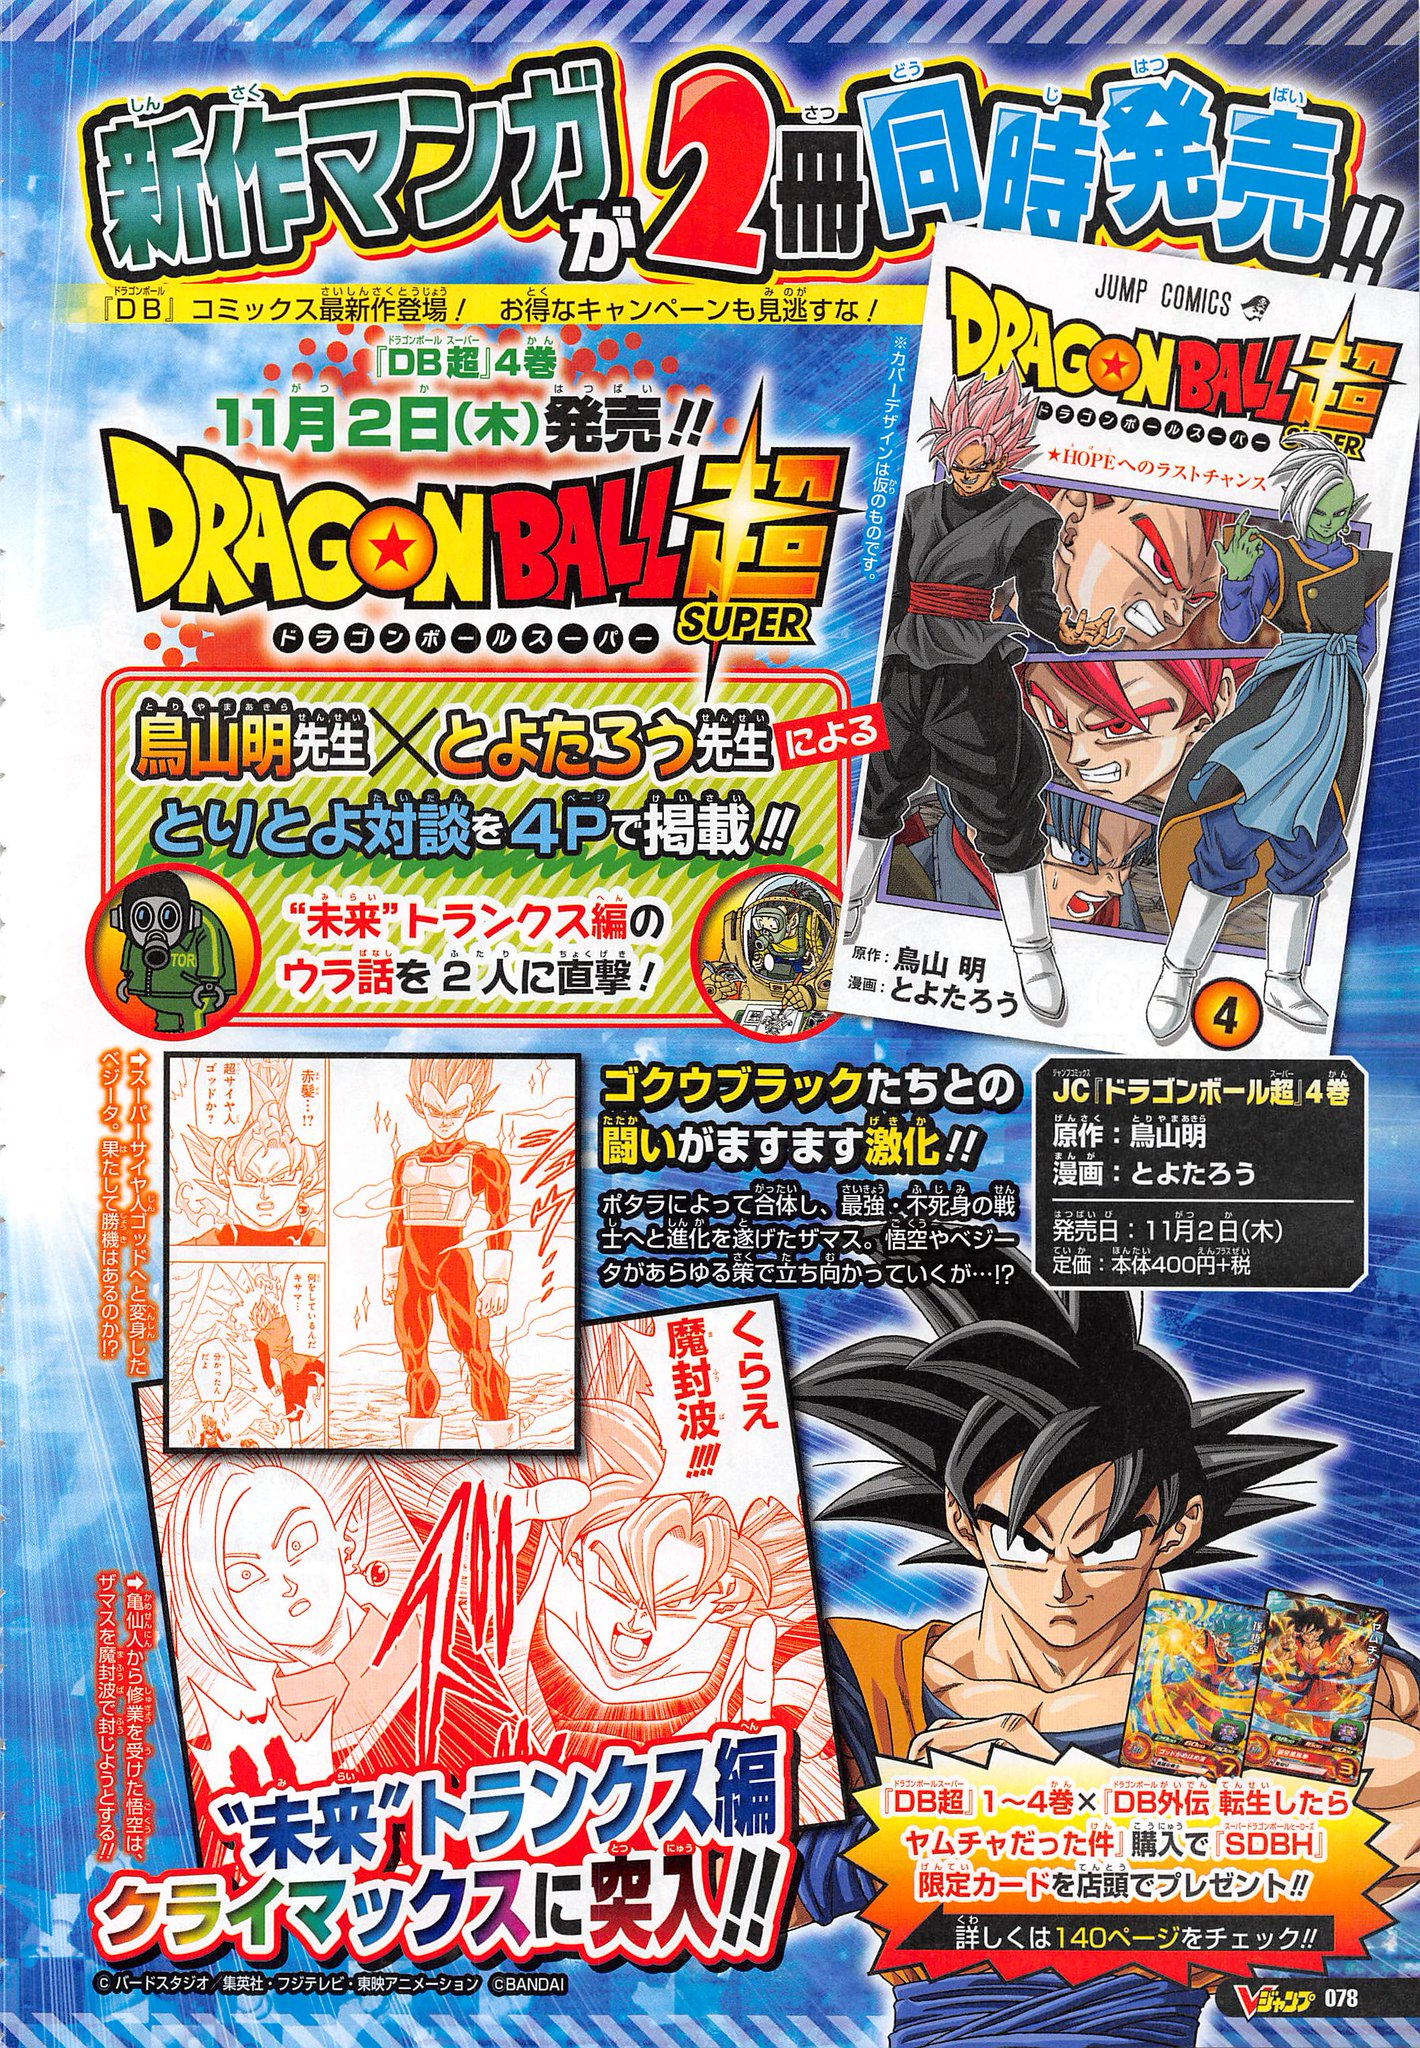 Manga di Dragon Ball Super